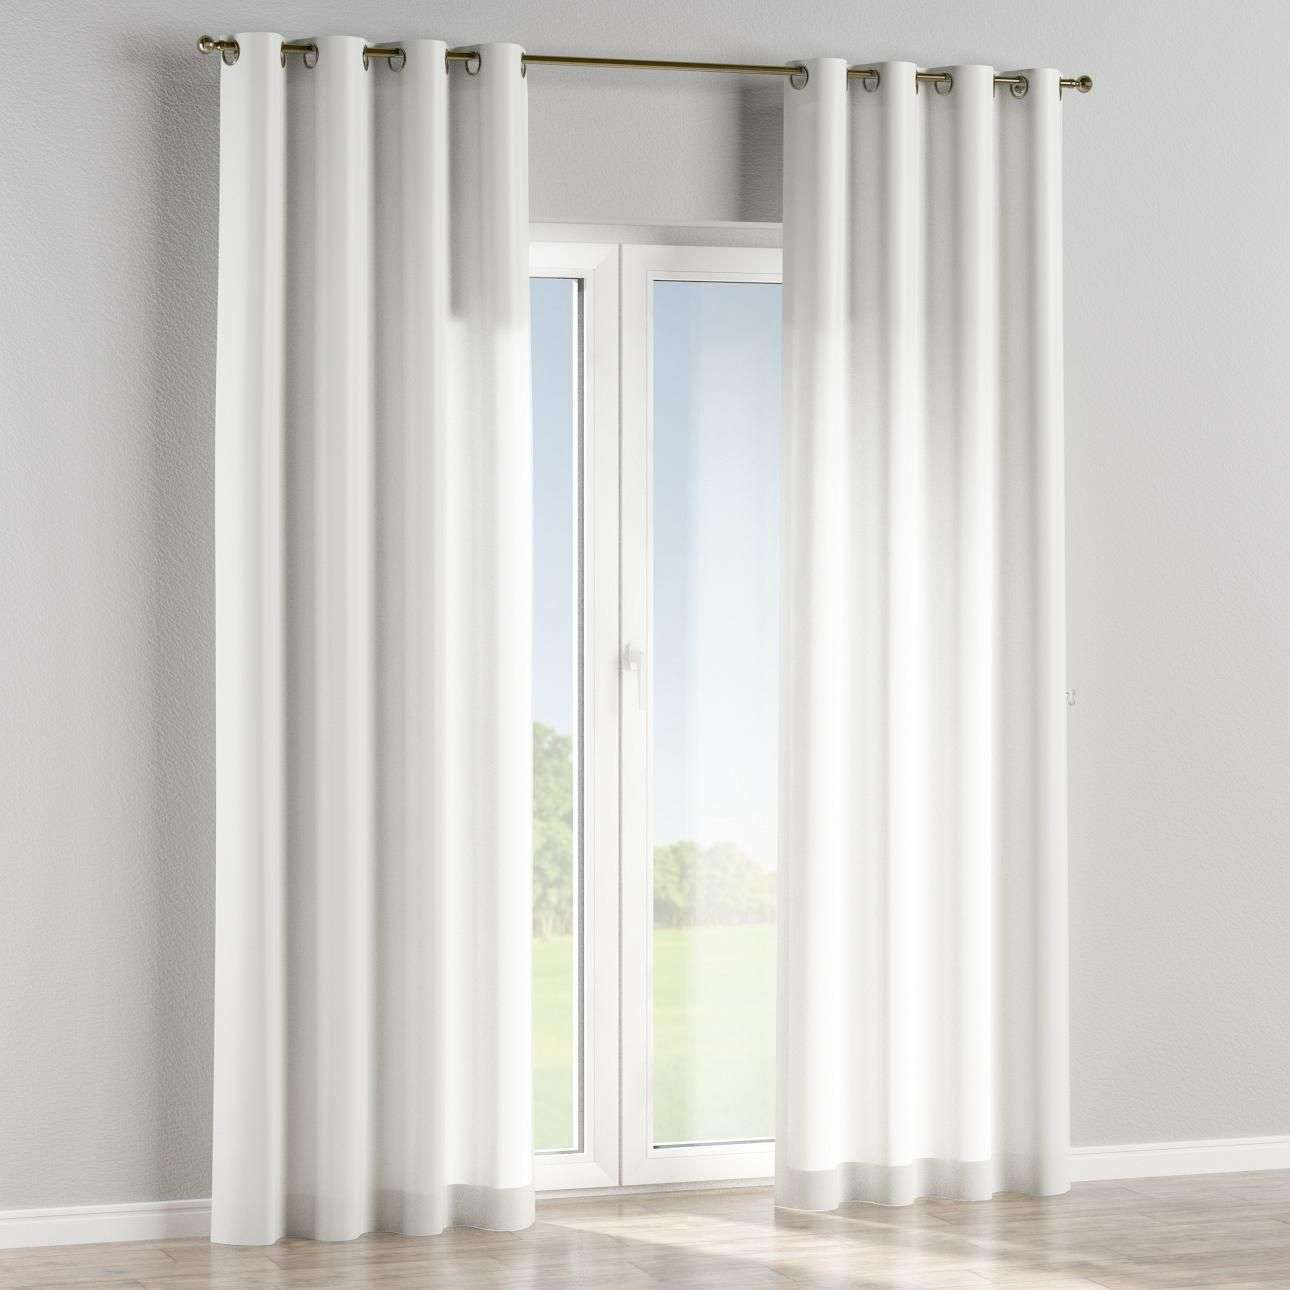 Eyelet lined curtains in collection Kids/Baby, fabric: 119-13